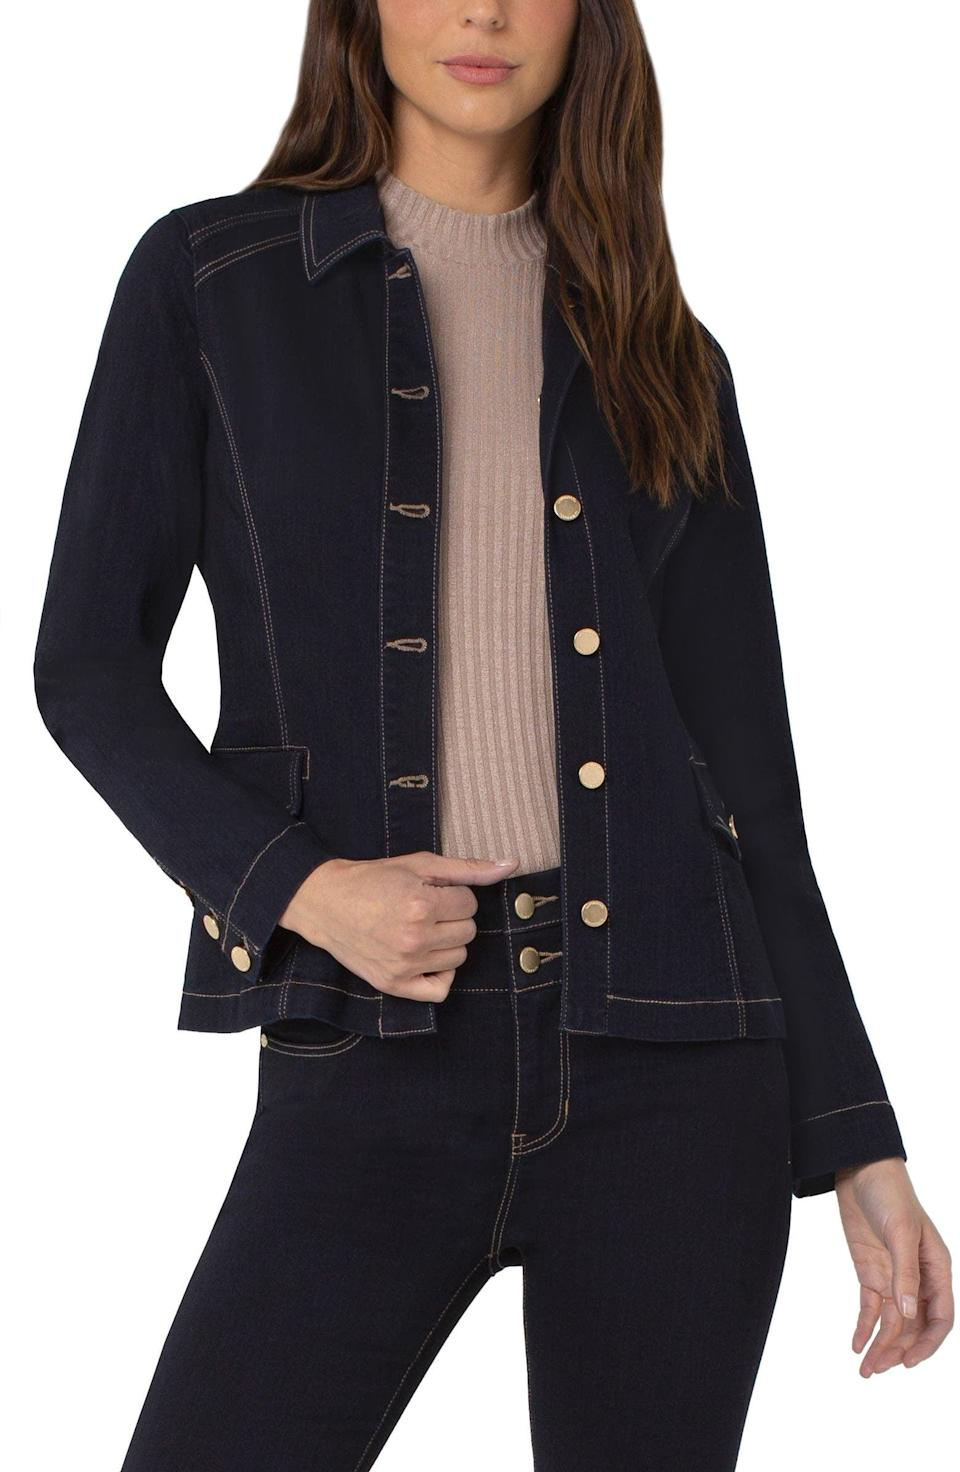 <p>From the topstitched outlines to the tailored silhouette, this <span>Liverpool Los Angeles Tailored Denim Jacket</span> ($109) exudes femininity and craftsmanship. You'll love wearing it year-round.</p>